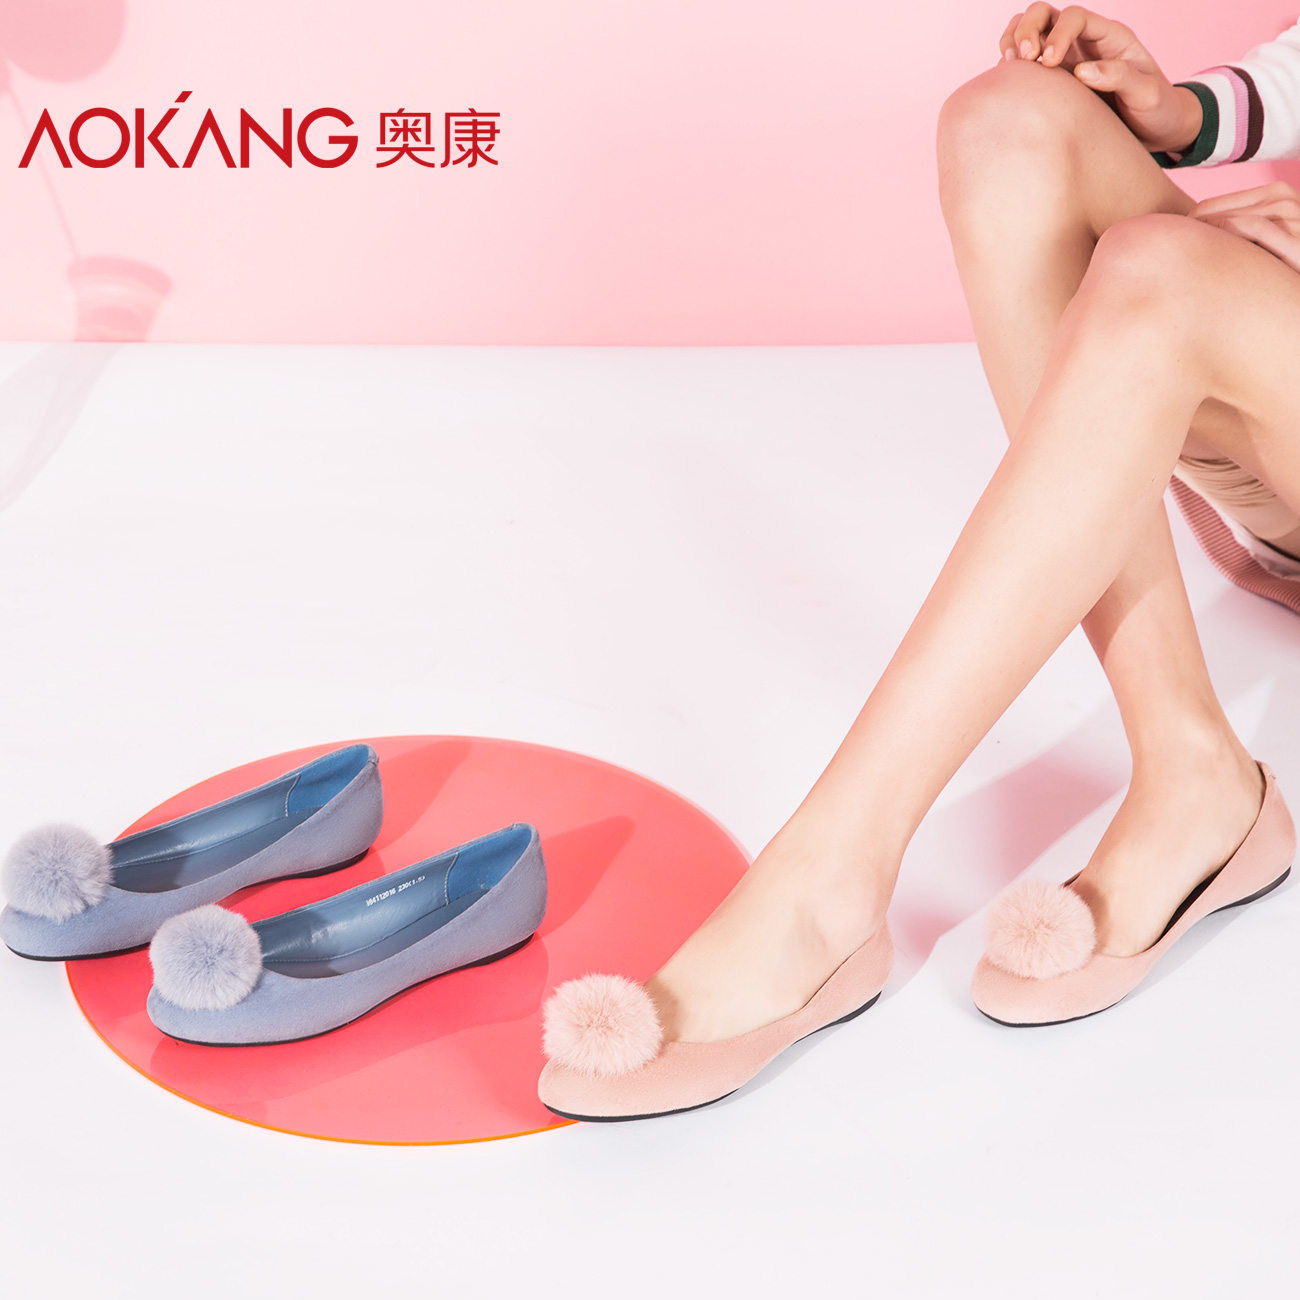 Aokang Official Flagship Shop Women's Shoes Spring and Autumn Flat-soled Shoes, Fur Ball, Shallow Mouth Fashion Single Shoes, Sweet Lady Shoes